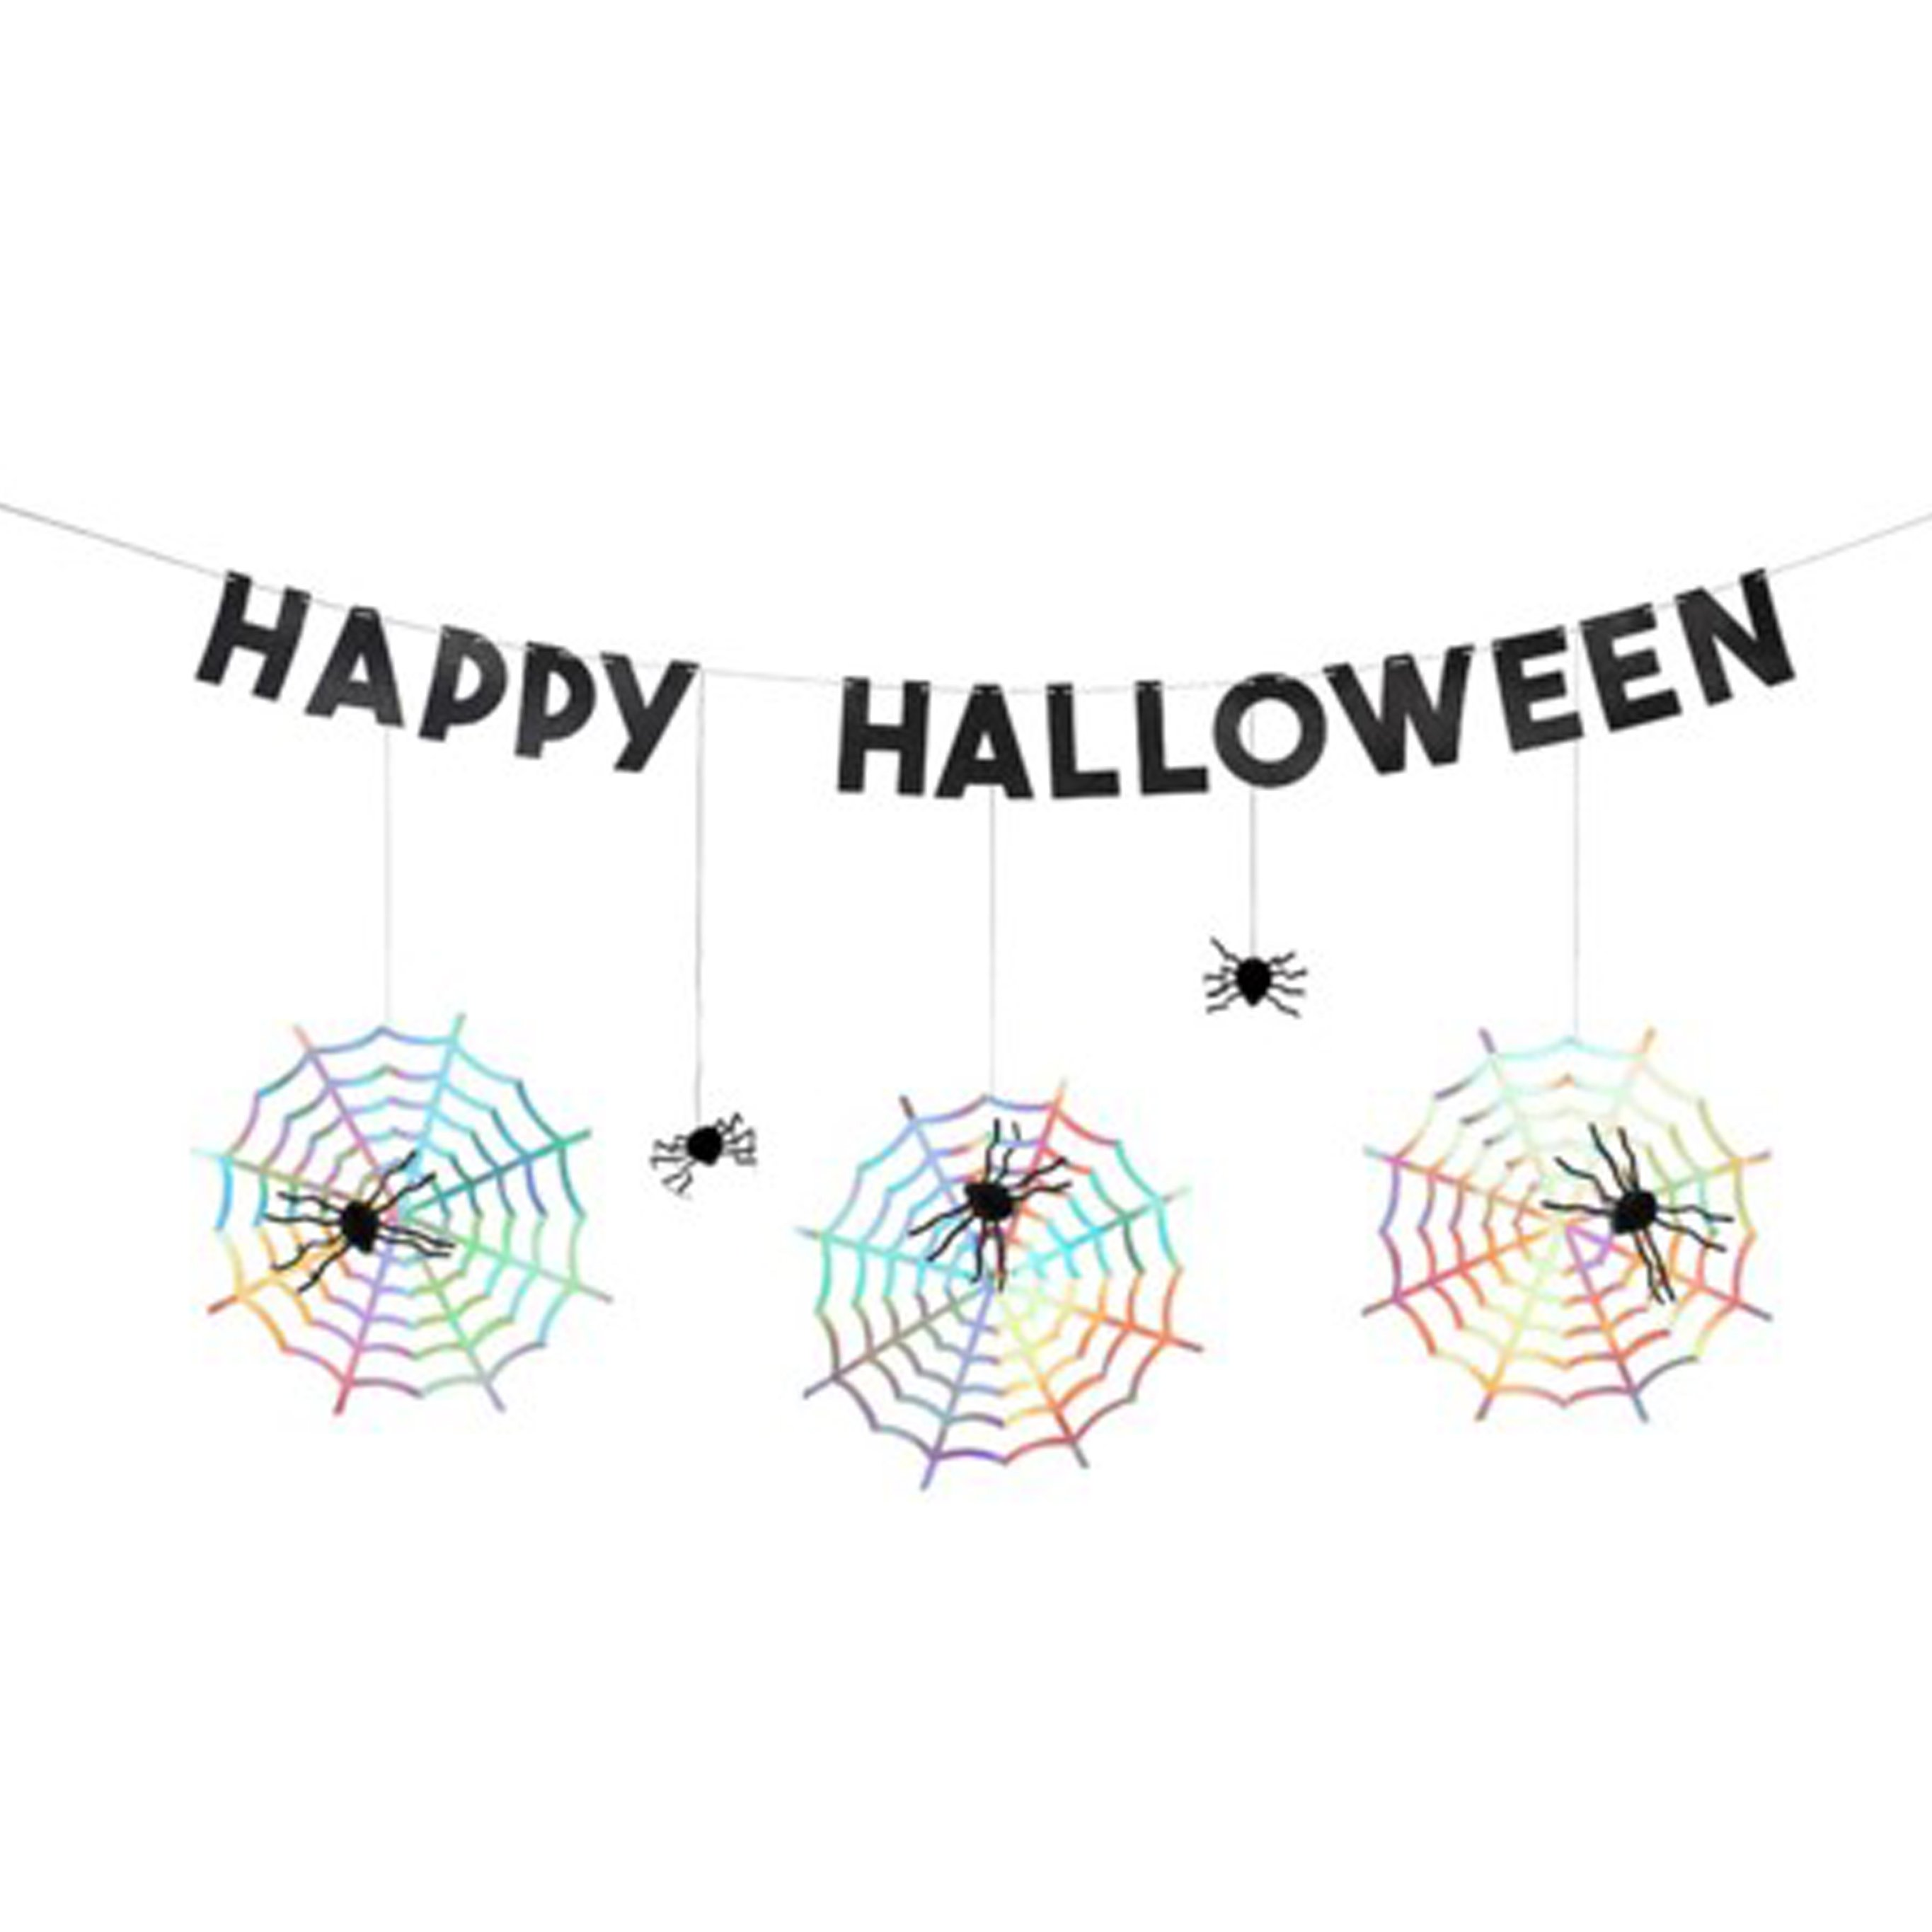 BUY ME / NEW ITEM $29.99 each Holographic Honeycomb Spider Paper Garland